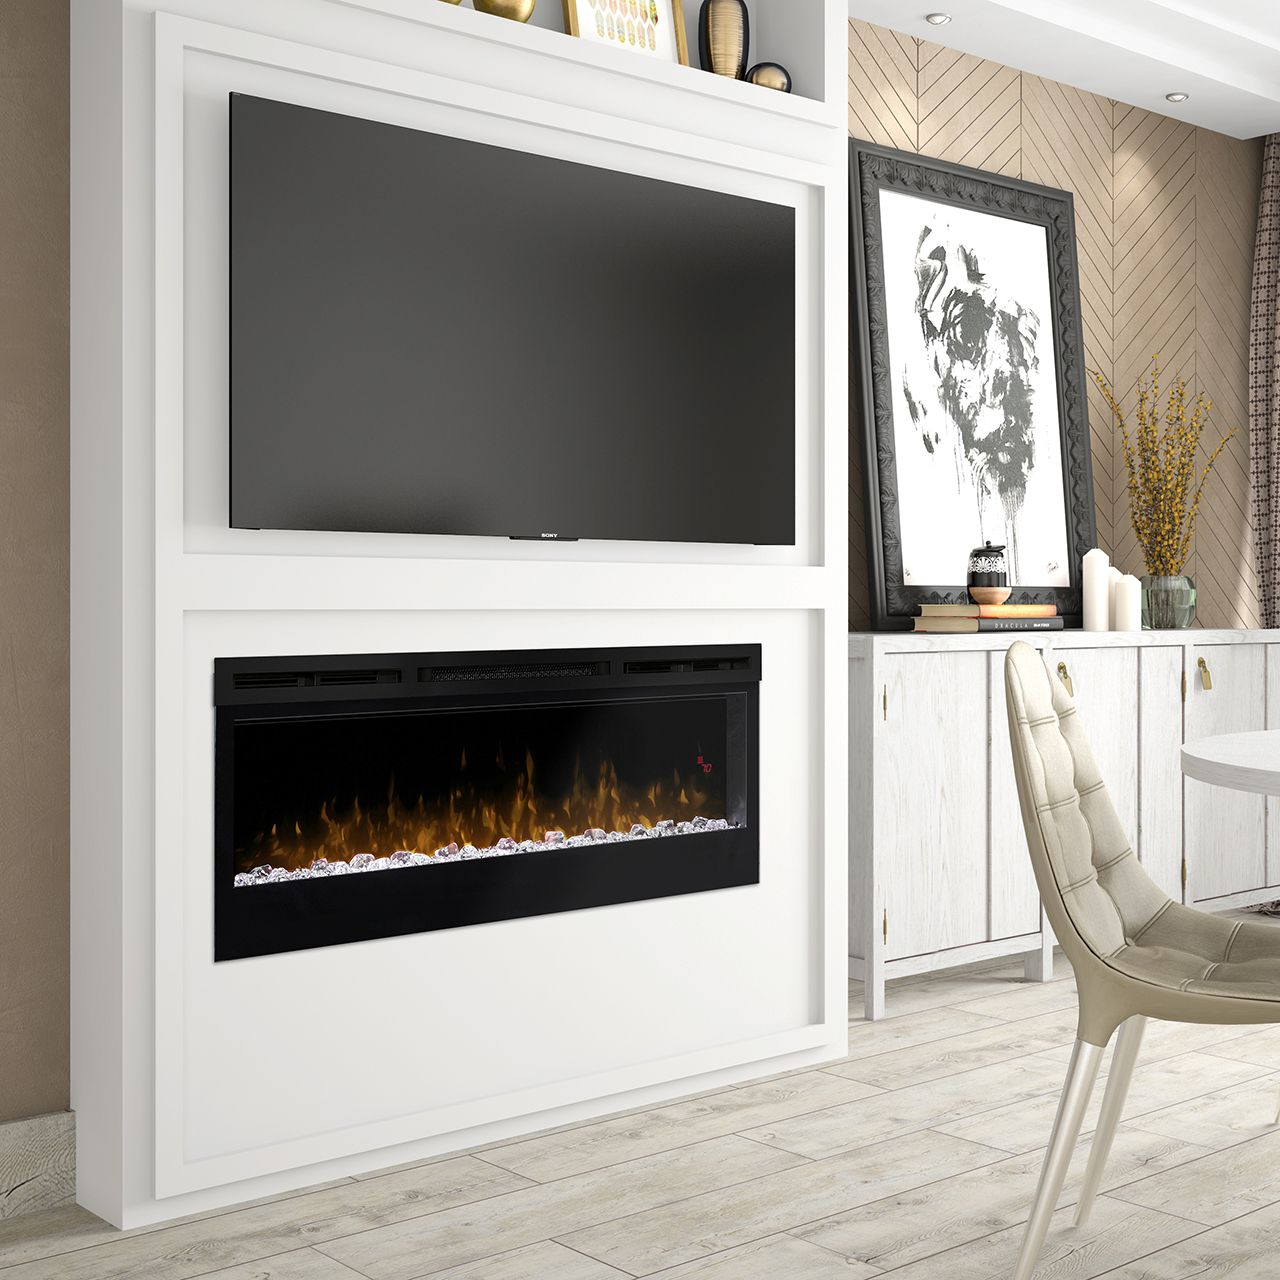 Dimplex Electric Fireplaces Linear Fireplaces Products Prism Series 50 Linea Wall Mount Electric Fireplace Linear Fireplace Dimplex Electric Fireplace